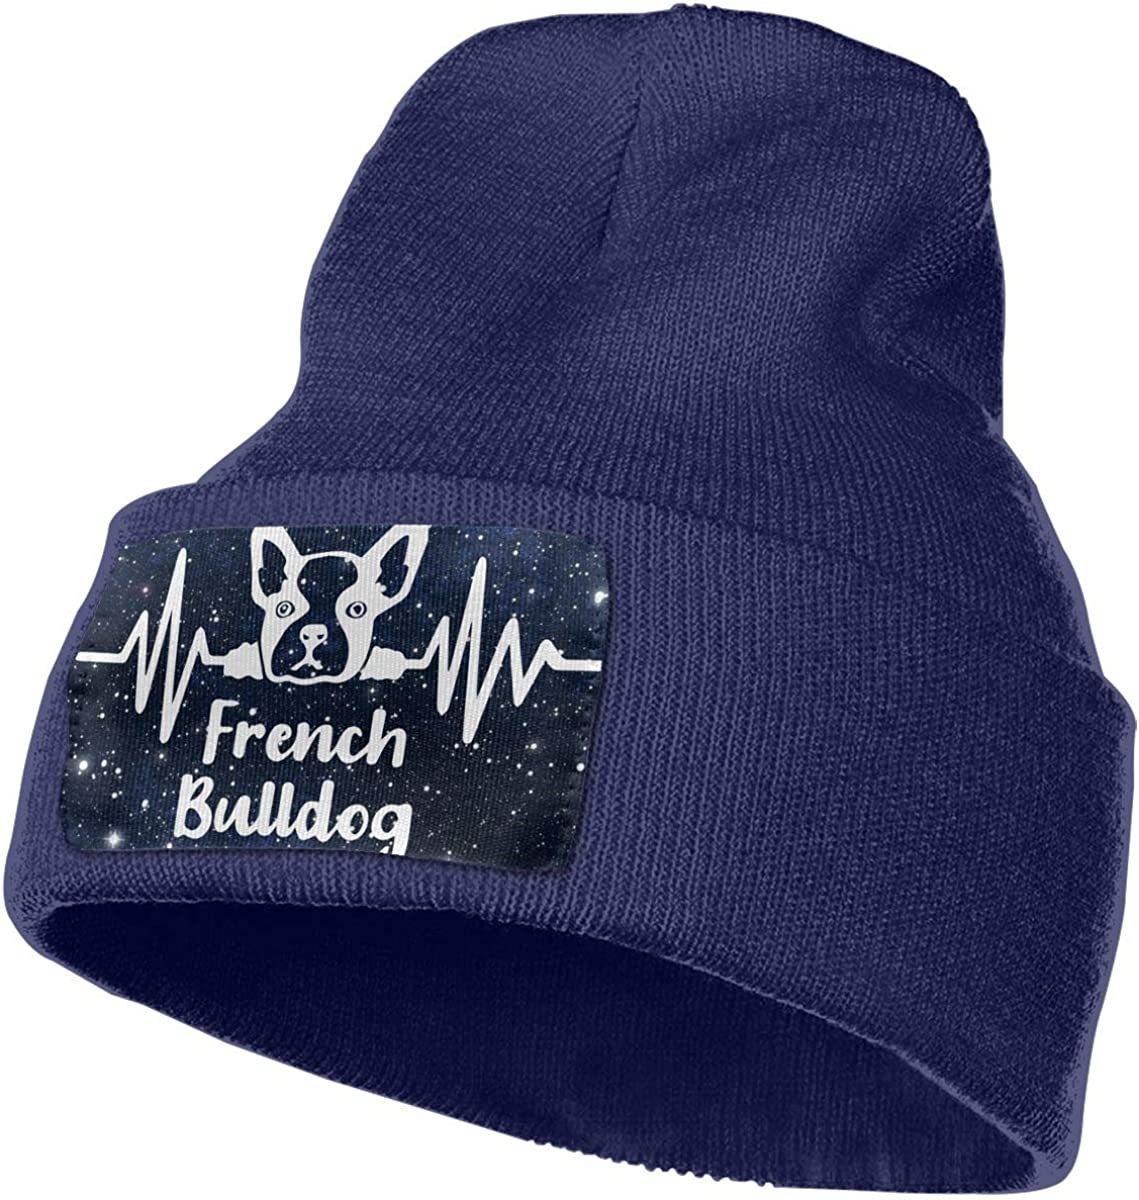 TAOMAP89 French Bulldog Frequency Men /& Women Skull Caps Winter Warm Stretchy Knit Beanie Hats